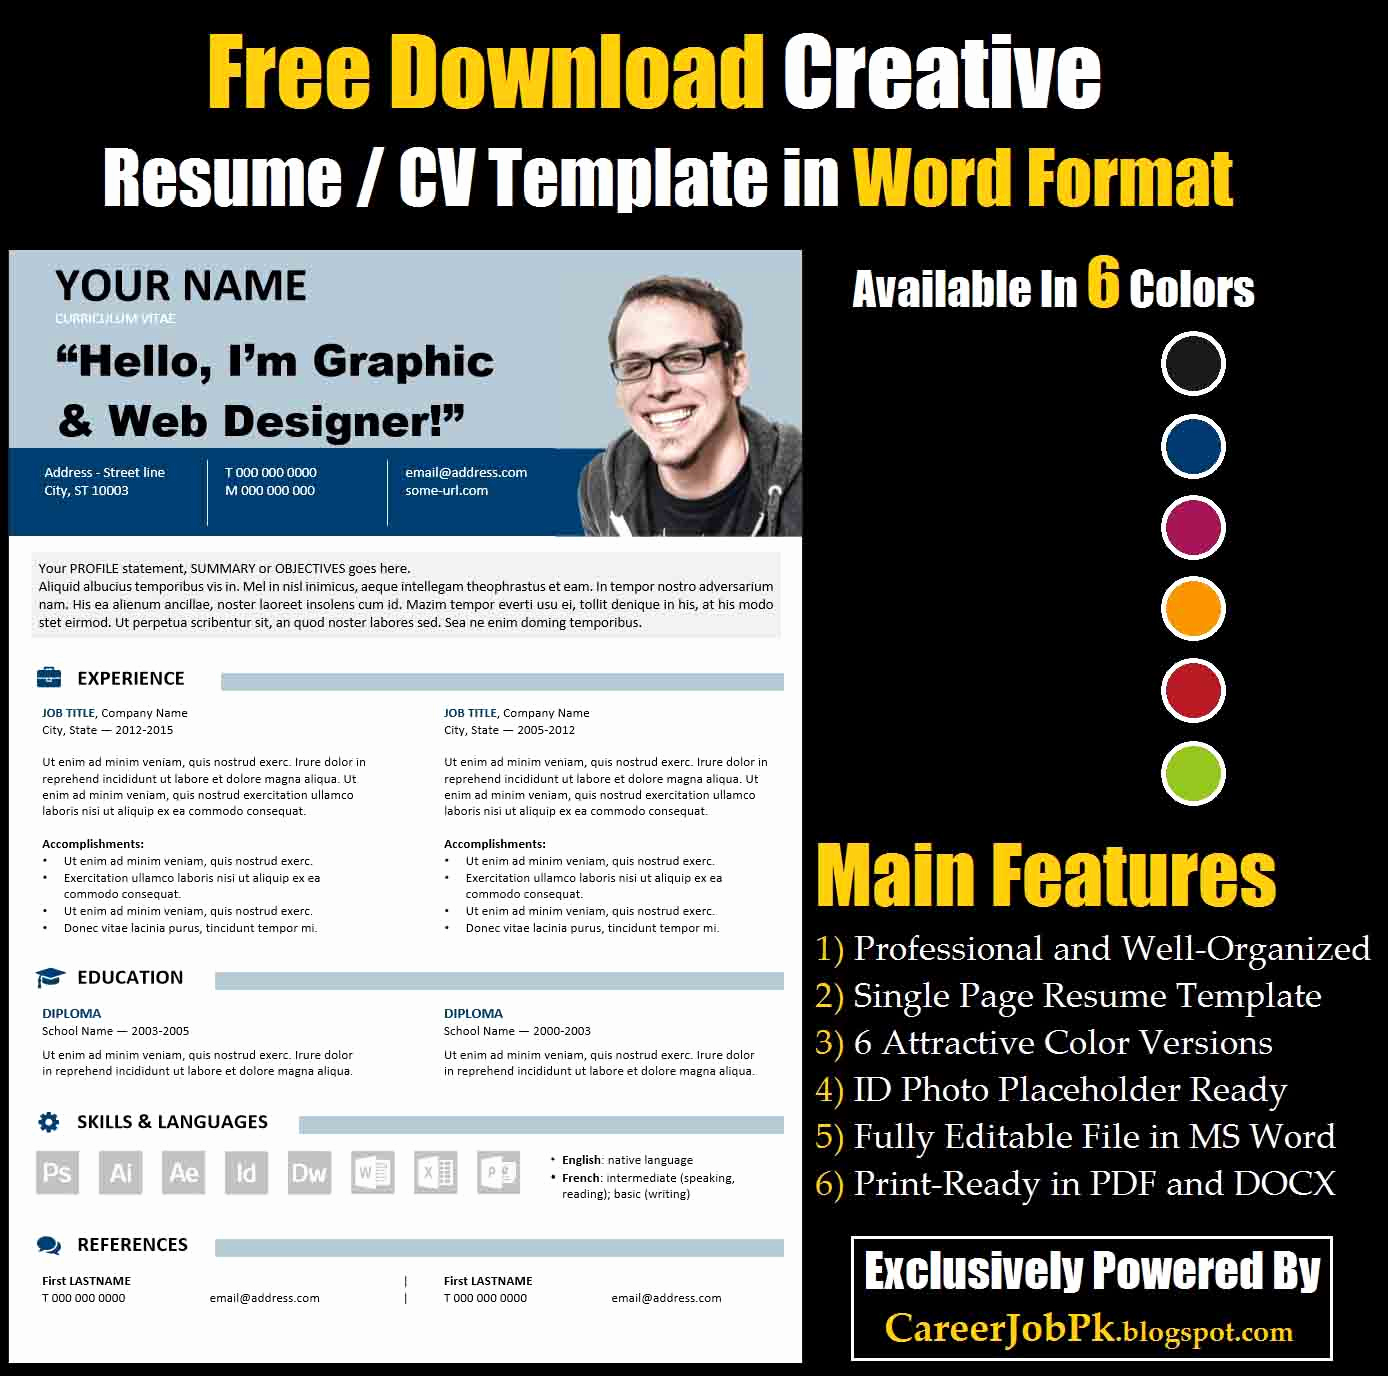 Free Creative Resume Templates Word Fresh Free Download Editable Resume Cv Template In Ms Word format